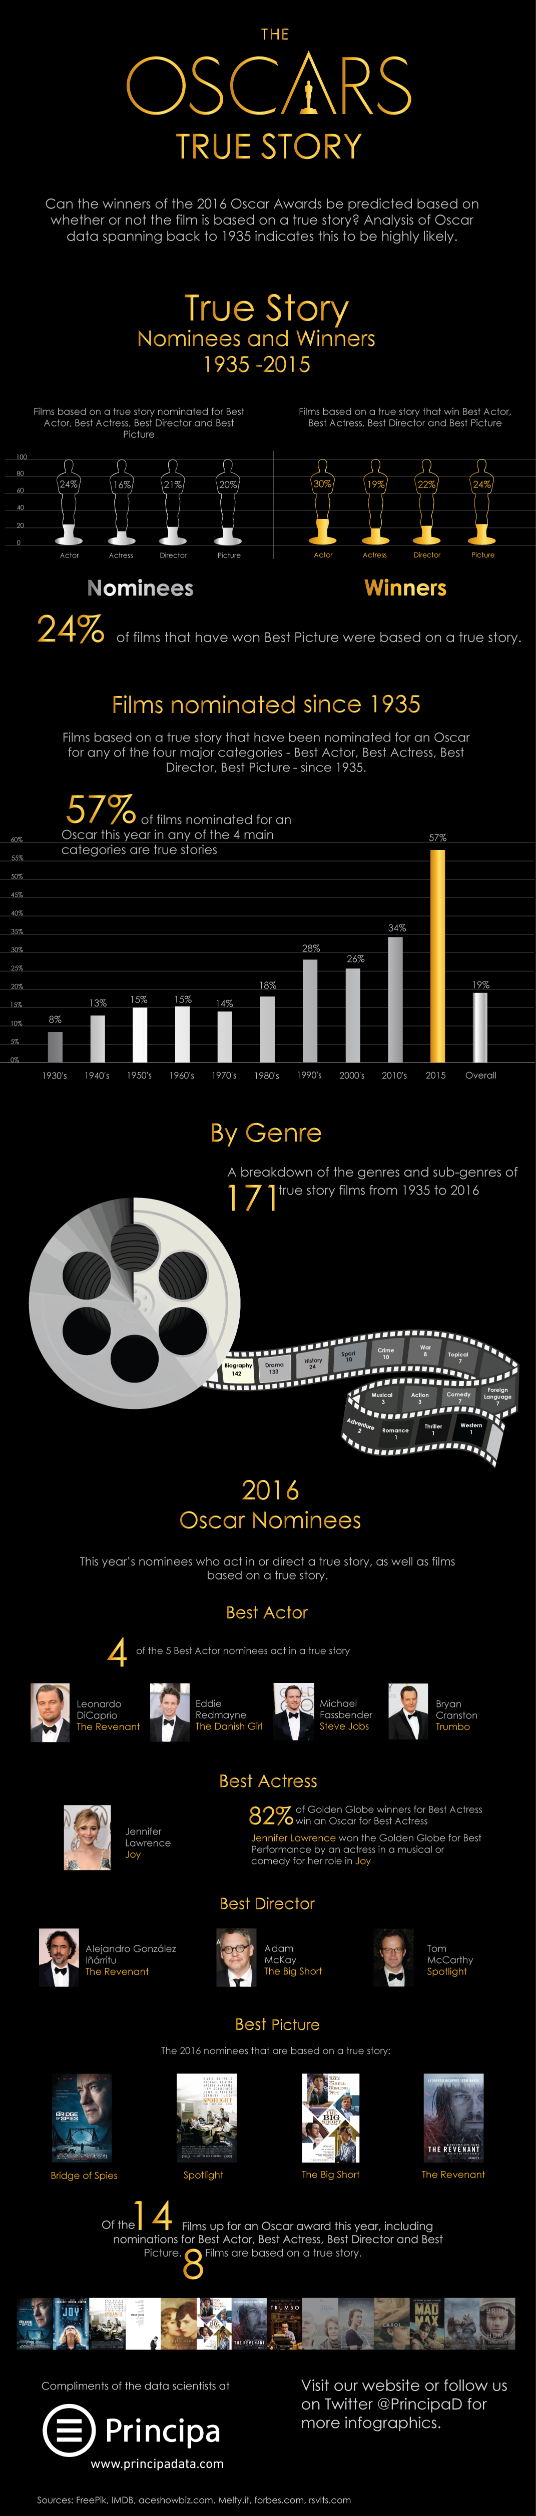 Sofia Coppola To Direct Remake Of The Beguiled With Nicole Kidman Elle Fanning And Kirsten Dunst furthermore How Have Women Fared In Film An Infographic moreover Harry Potter Cursed Child Part 2 First Preview 1201770112 also Best Supporting Actress 2014 Oscar Contenders Include Jennifer Lawrence Julia Roberts And A Bodyless Scarlett Johansson together with Eddie Redmayne Danish Girl Oscar History 462809573. on oscar predictions 2016 best actor